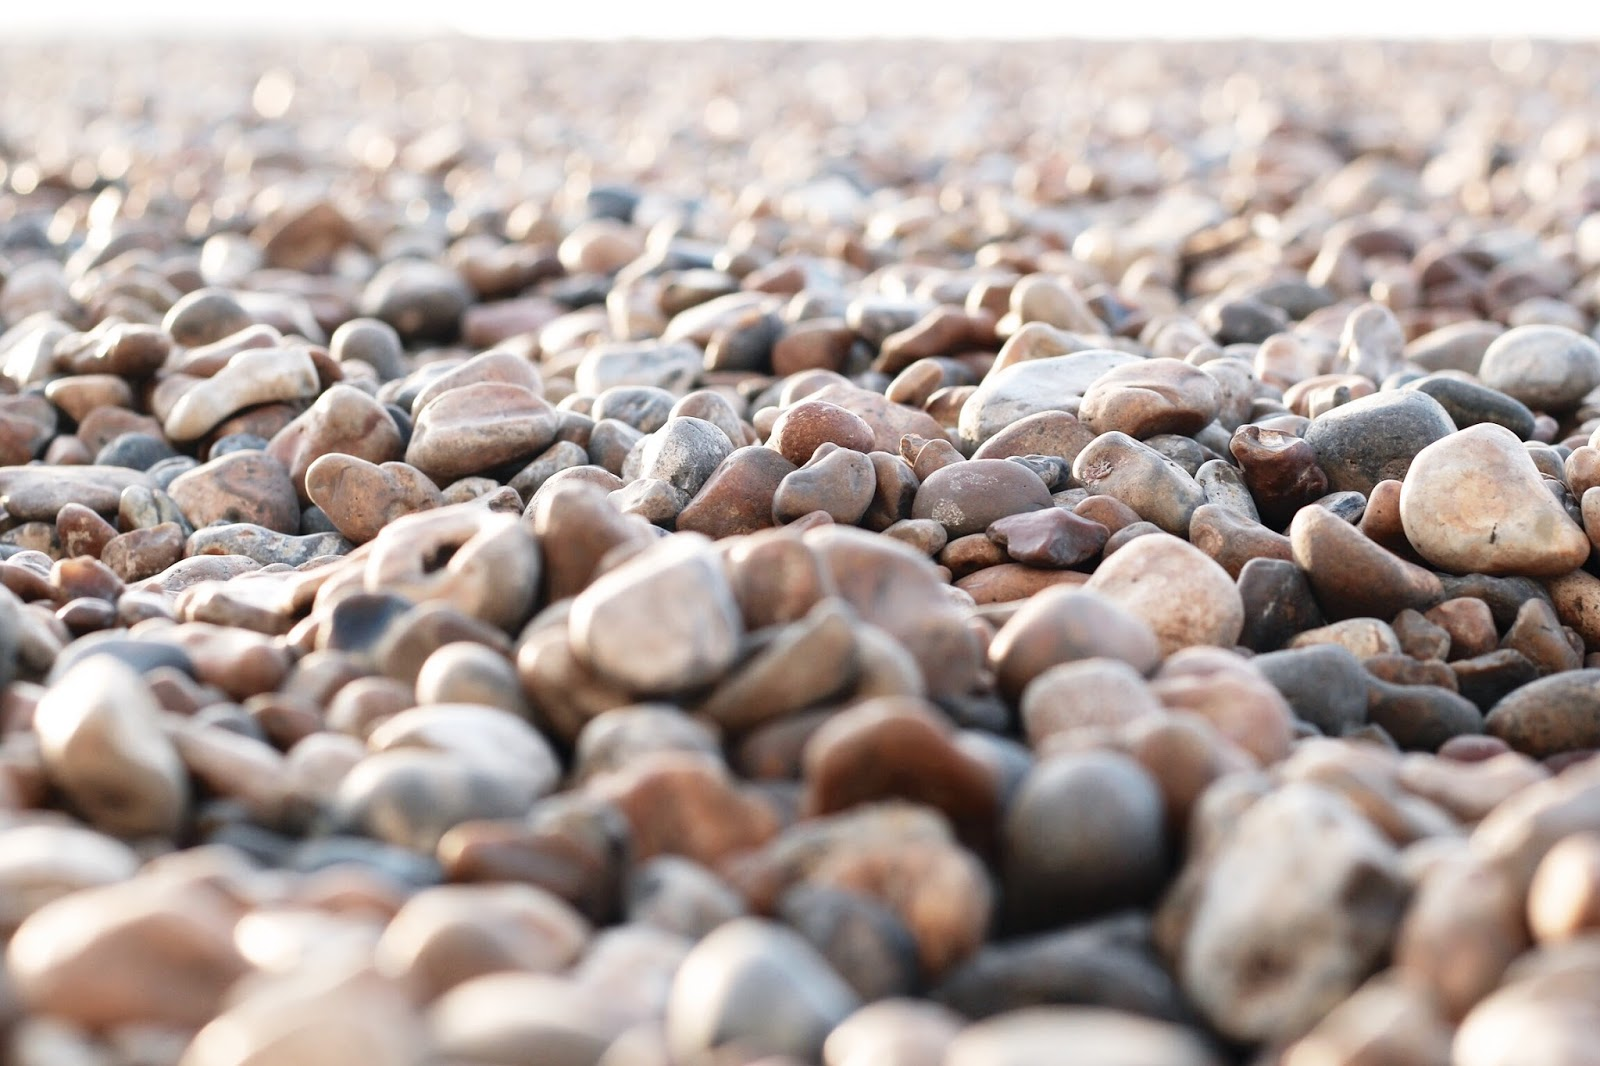 Close up pebble photography